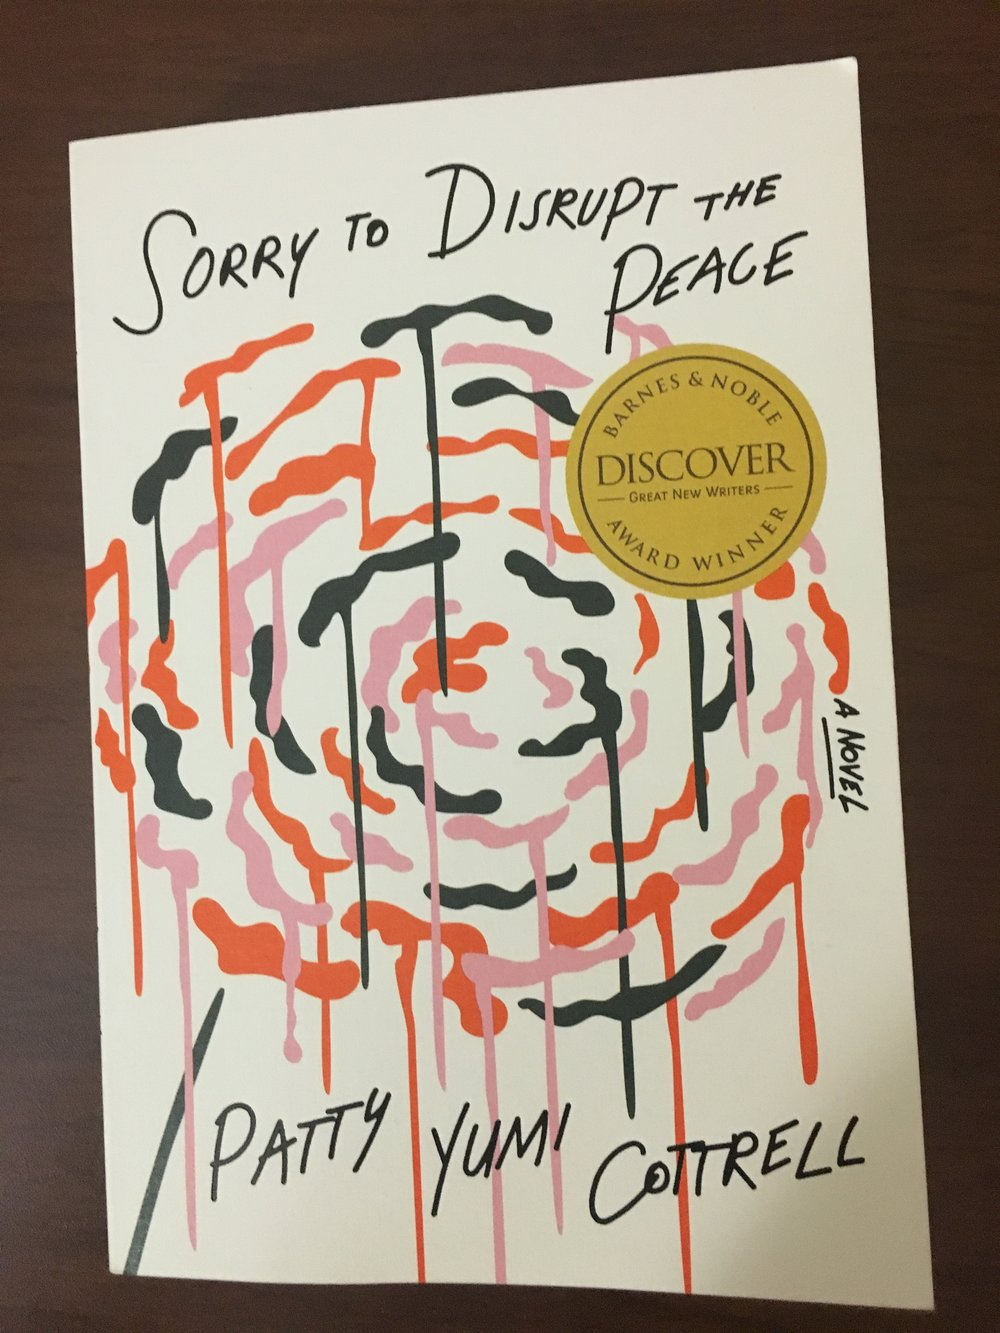 Sorry to Disrupt the Peace - My first selection and you should read this book.